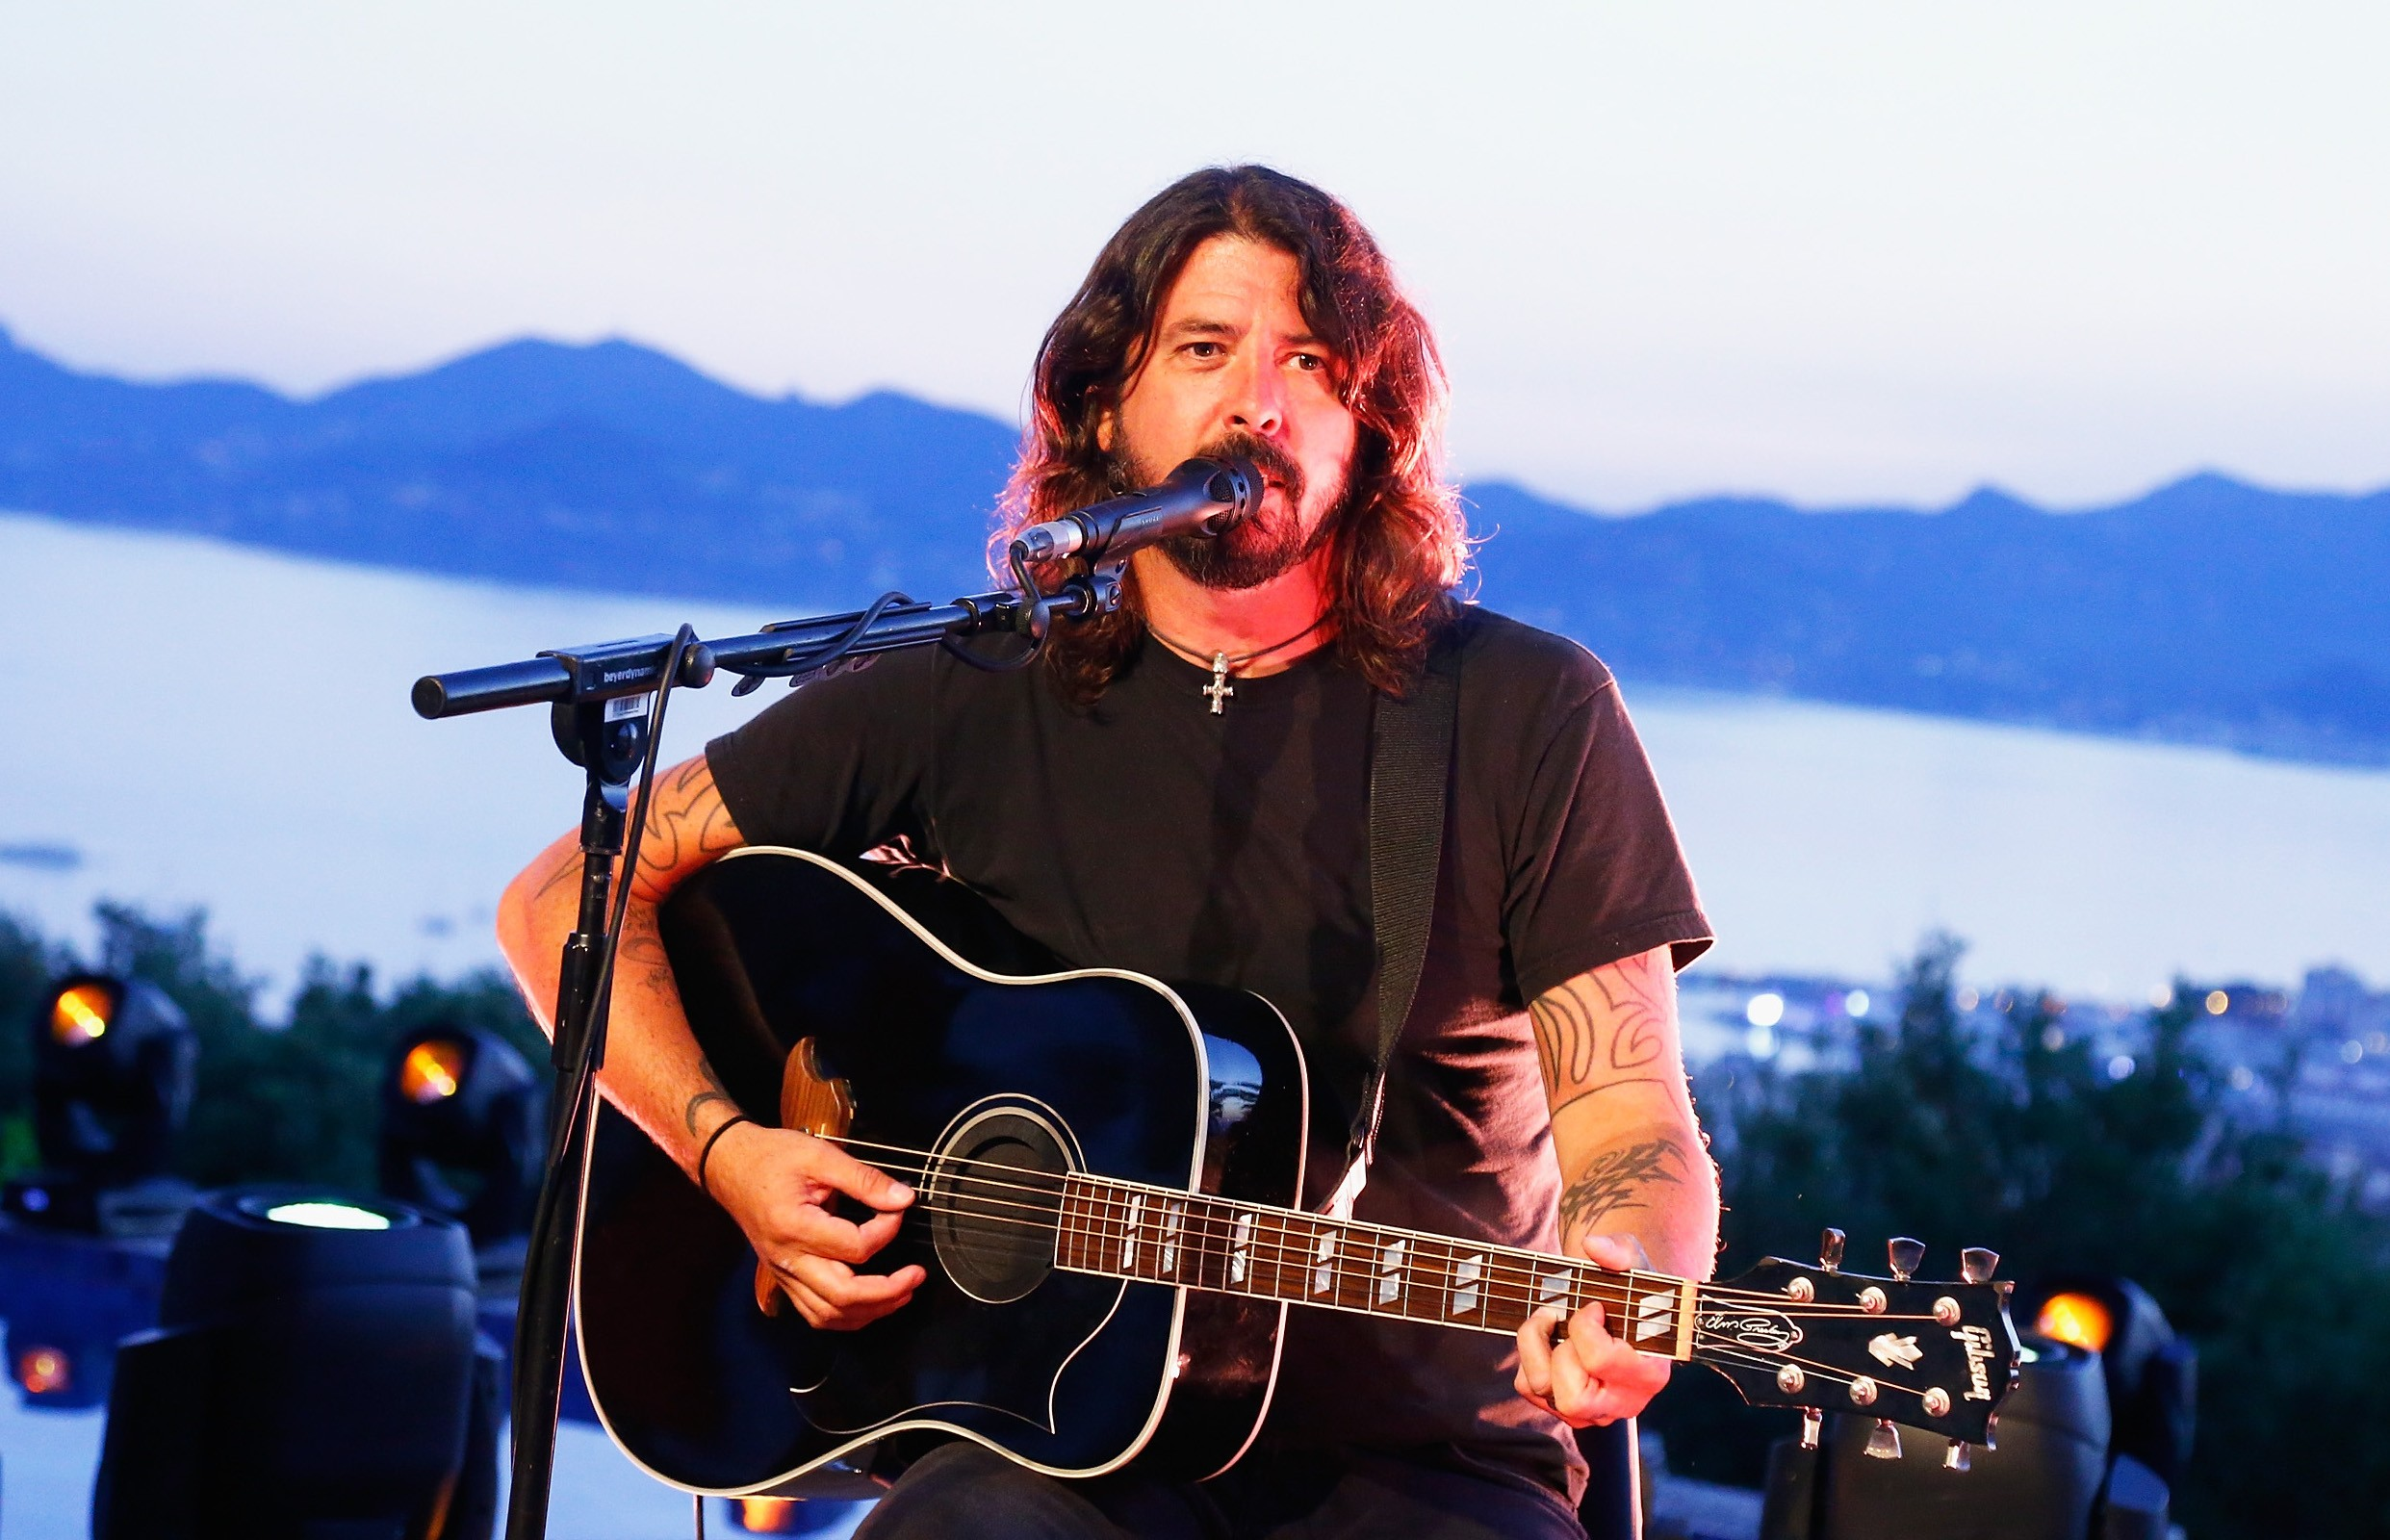 Dave Grohl Biography